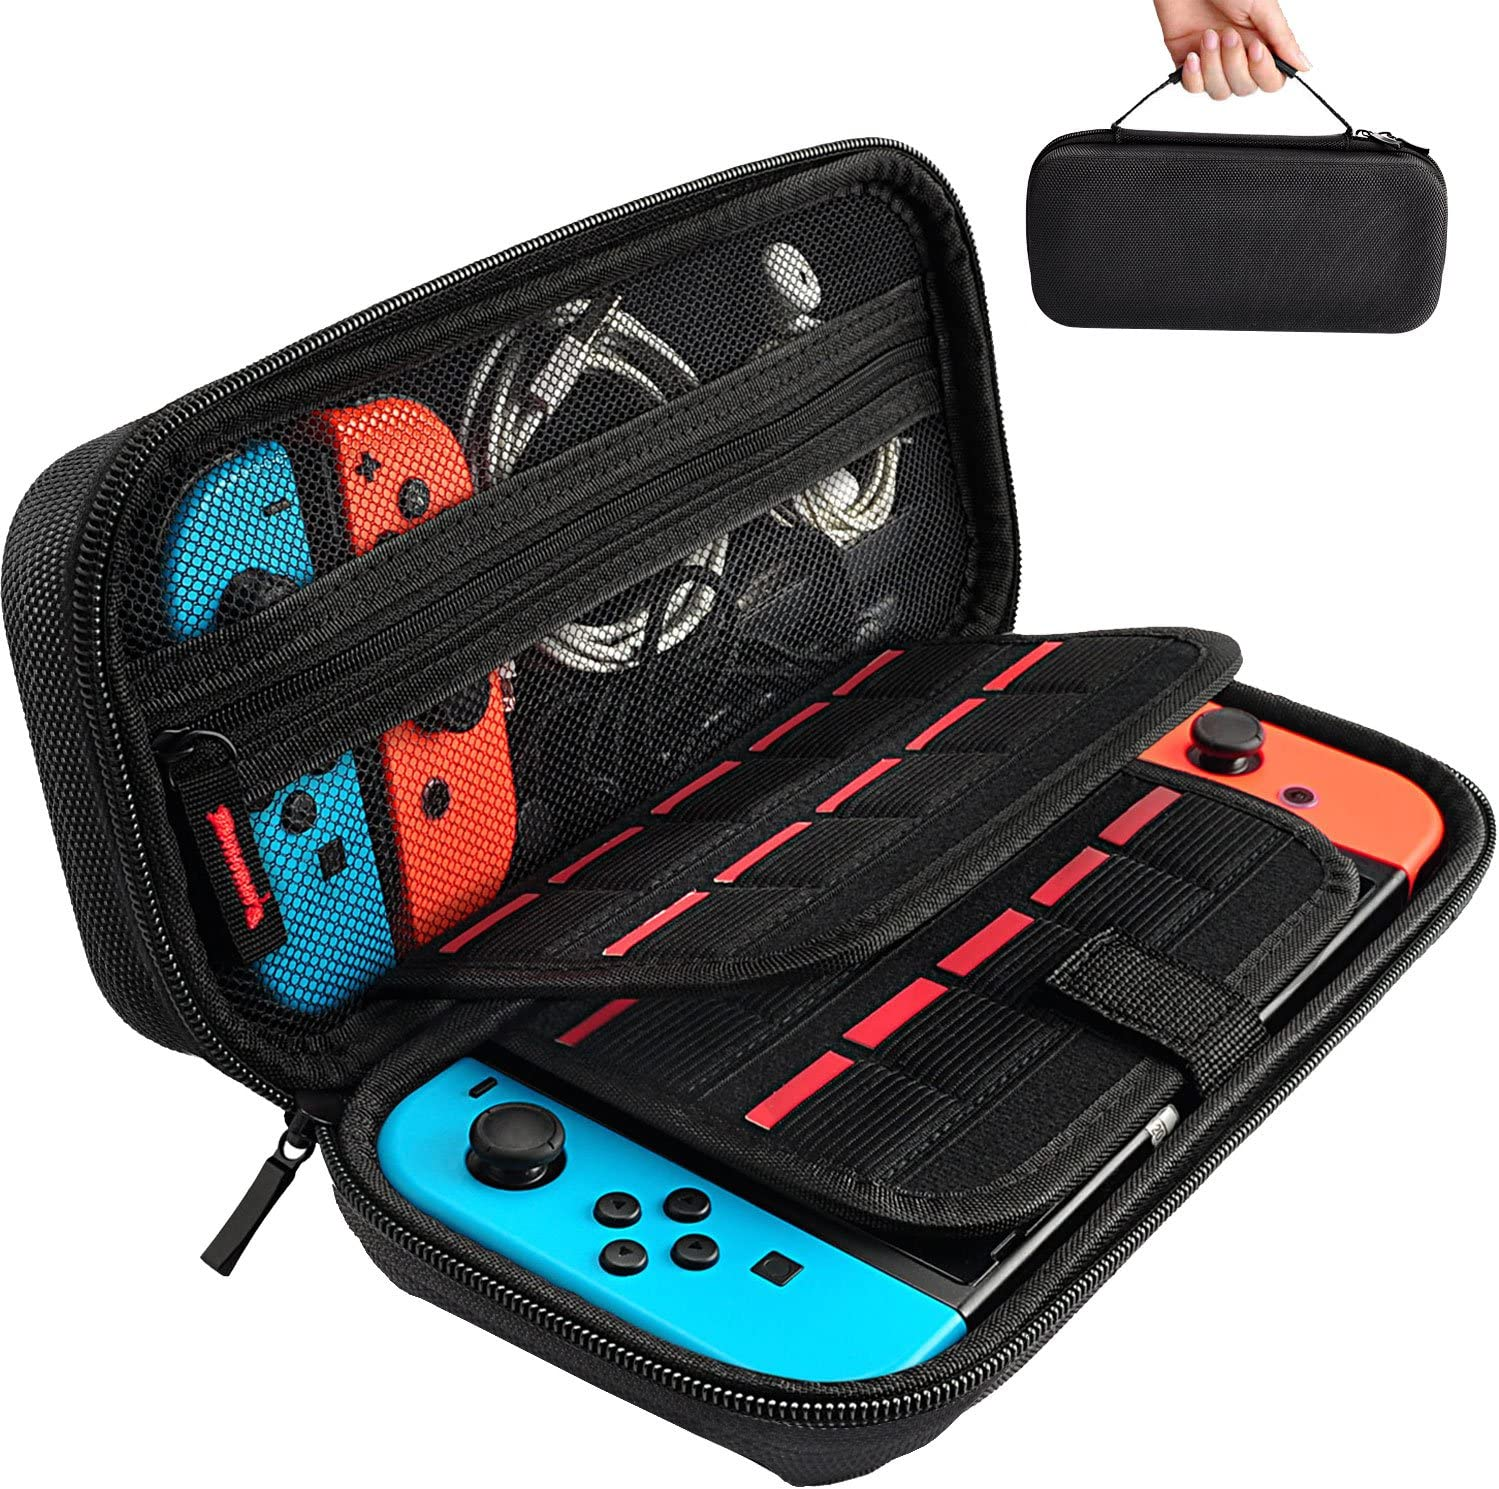 Image result for switch carrying case hestia